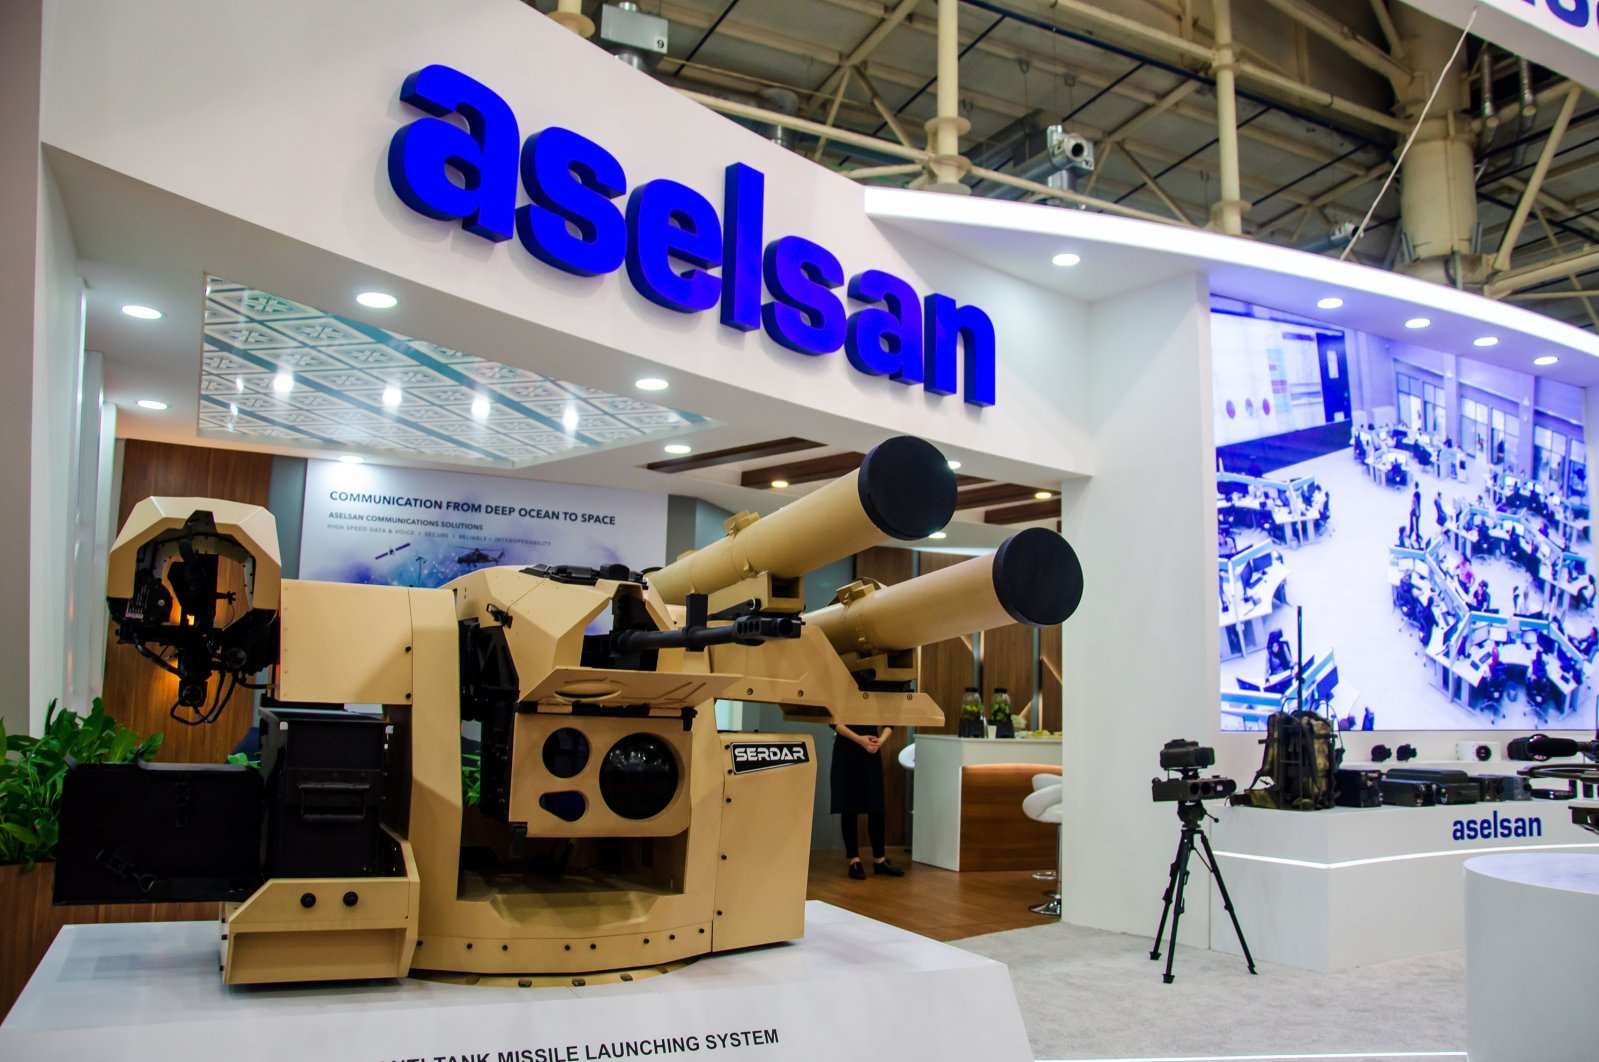 An Aselsan missile launching system on display at a defense fair in Kyiv, Ukraine, Oct. 9, 2019. (Shutterstock Photo)